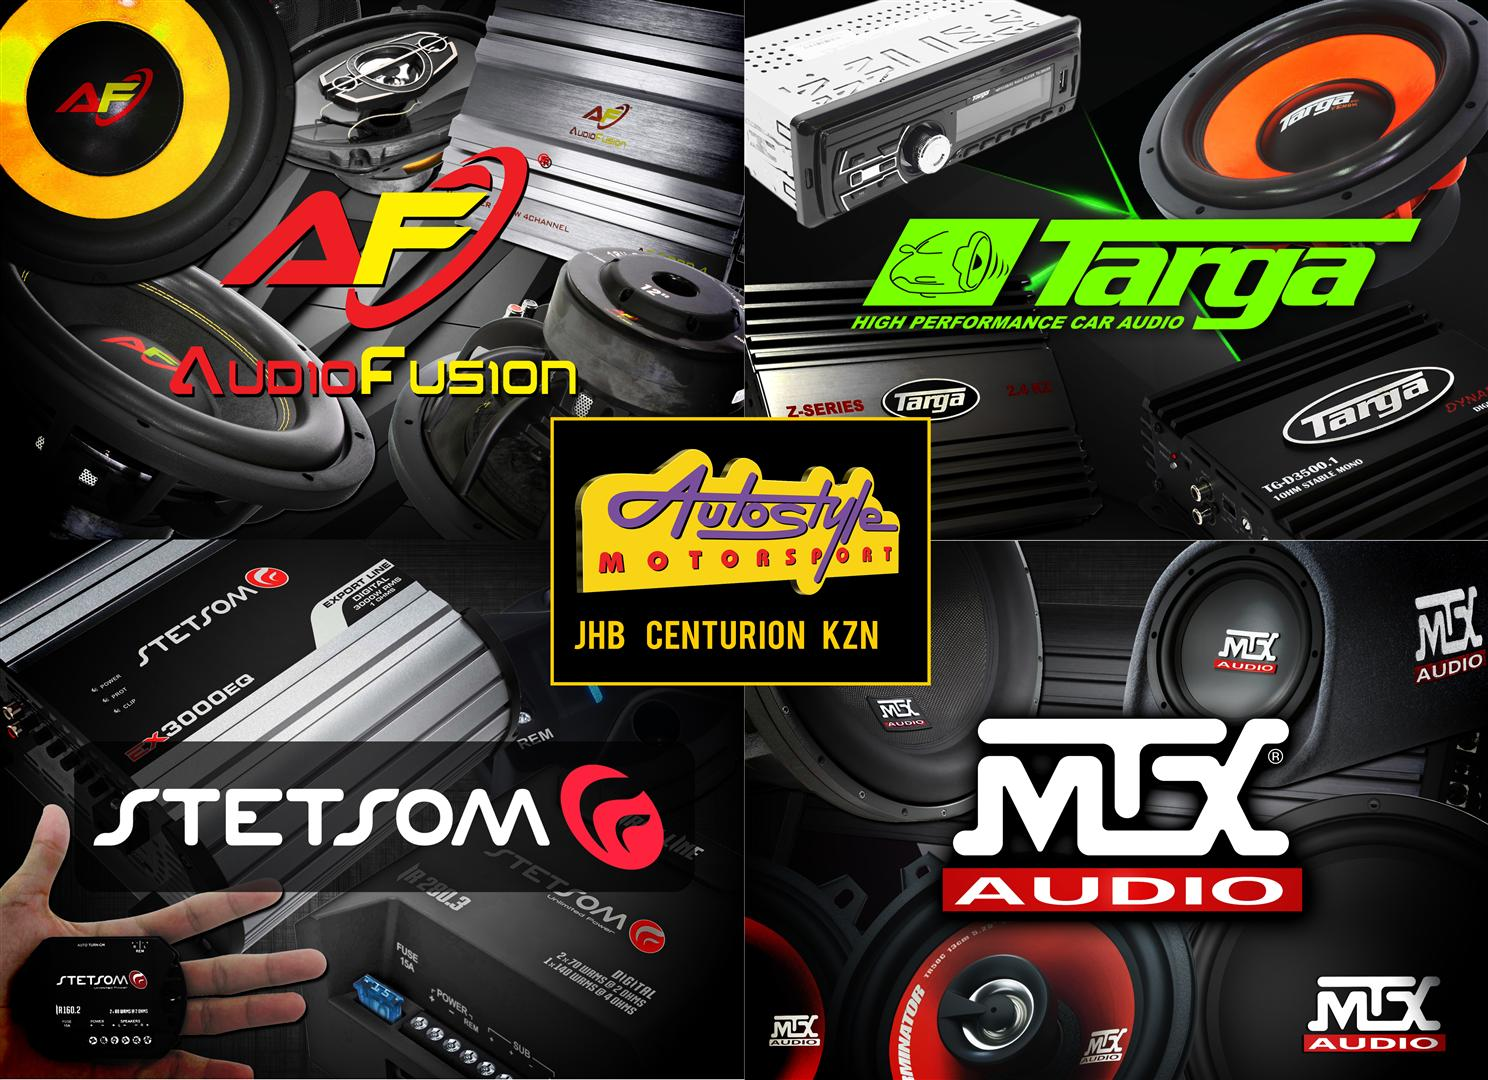 Autostyle Motorsport: Southern Africas largest auto accessory stores. Stocking the widest range car audio, mag alloy wheels & tyres, performance parts etc.  E&OE AUTOSTYLE MOTORSPORT WE BEAT ANY PRICE / OPEN 7 DAYS JHB Store: www.autostyle.co.za